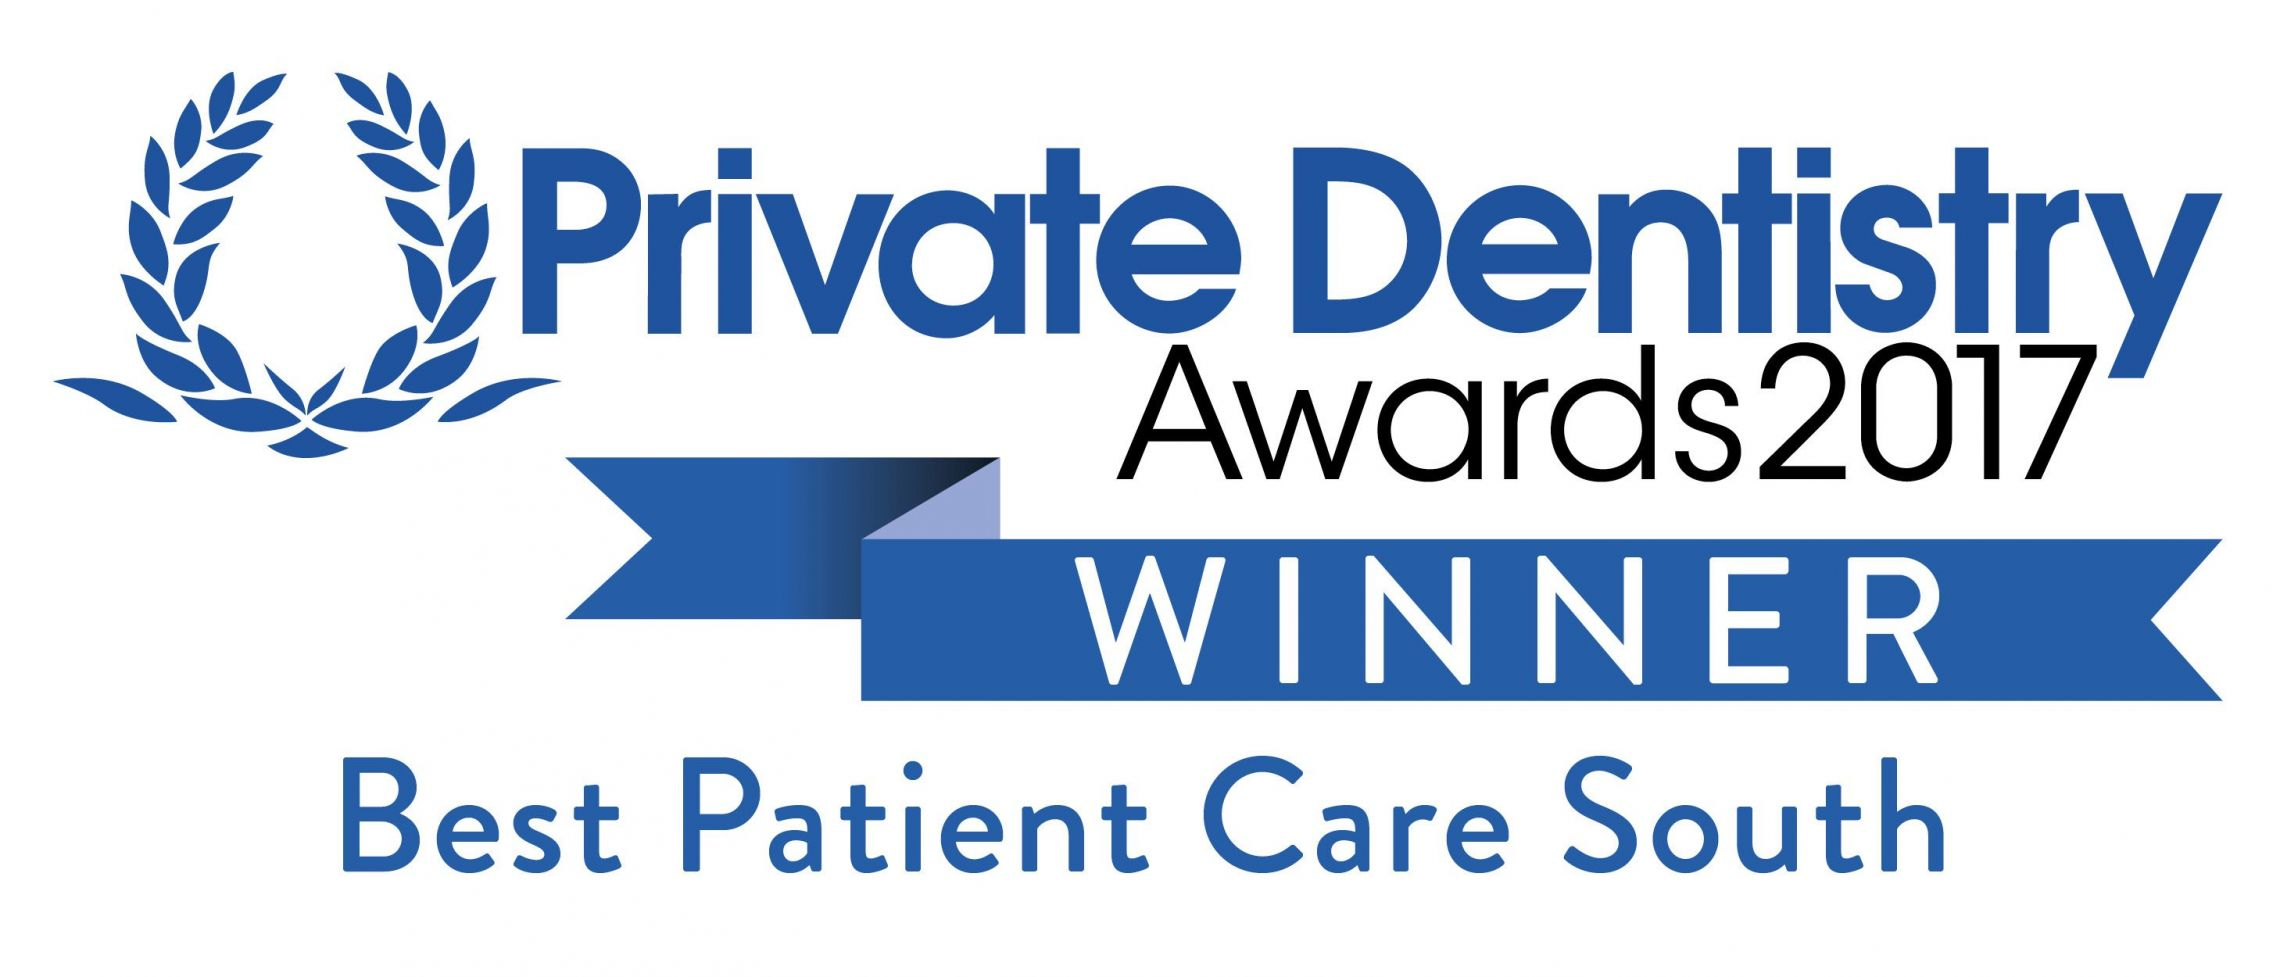 Its Official, we are the No.1 Dental Clinic for BEST PATIENT CARE in the South of England - #wonagain #4thtimewin #practiceoftheyear2017/18 #besthightechnologypractice #bestpatientcare #no.1dentalpractice #southeast